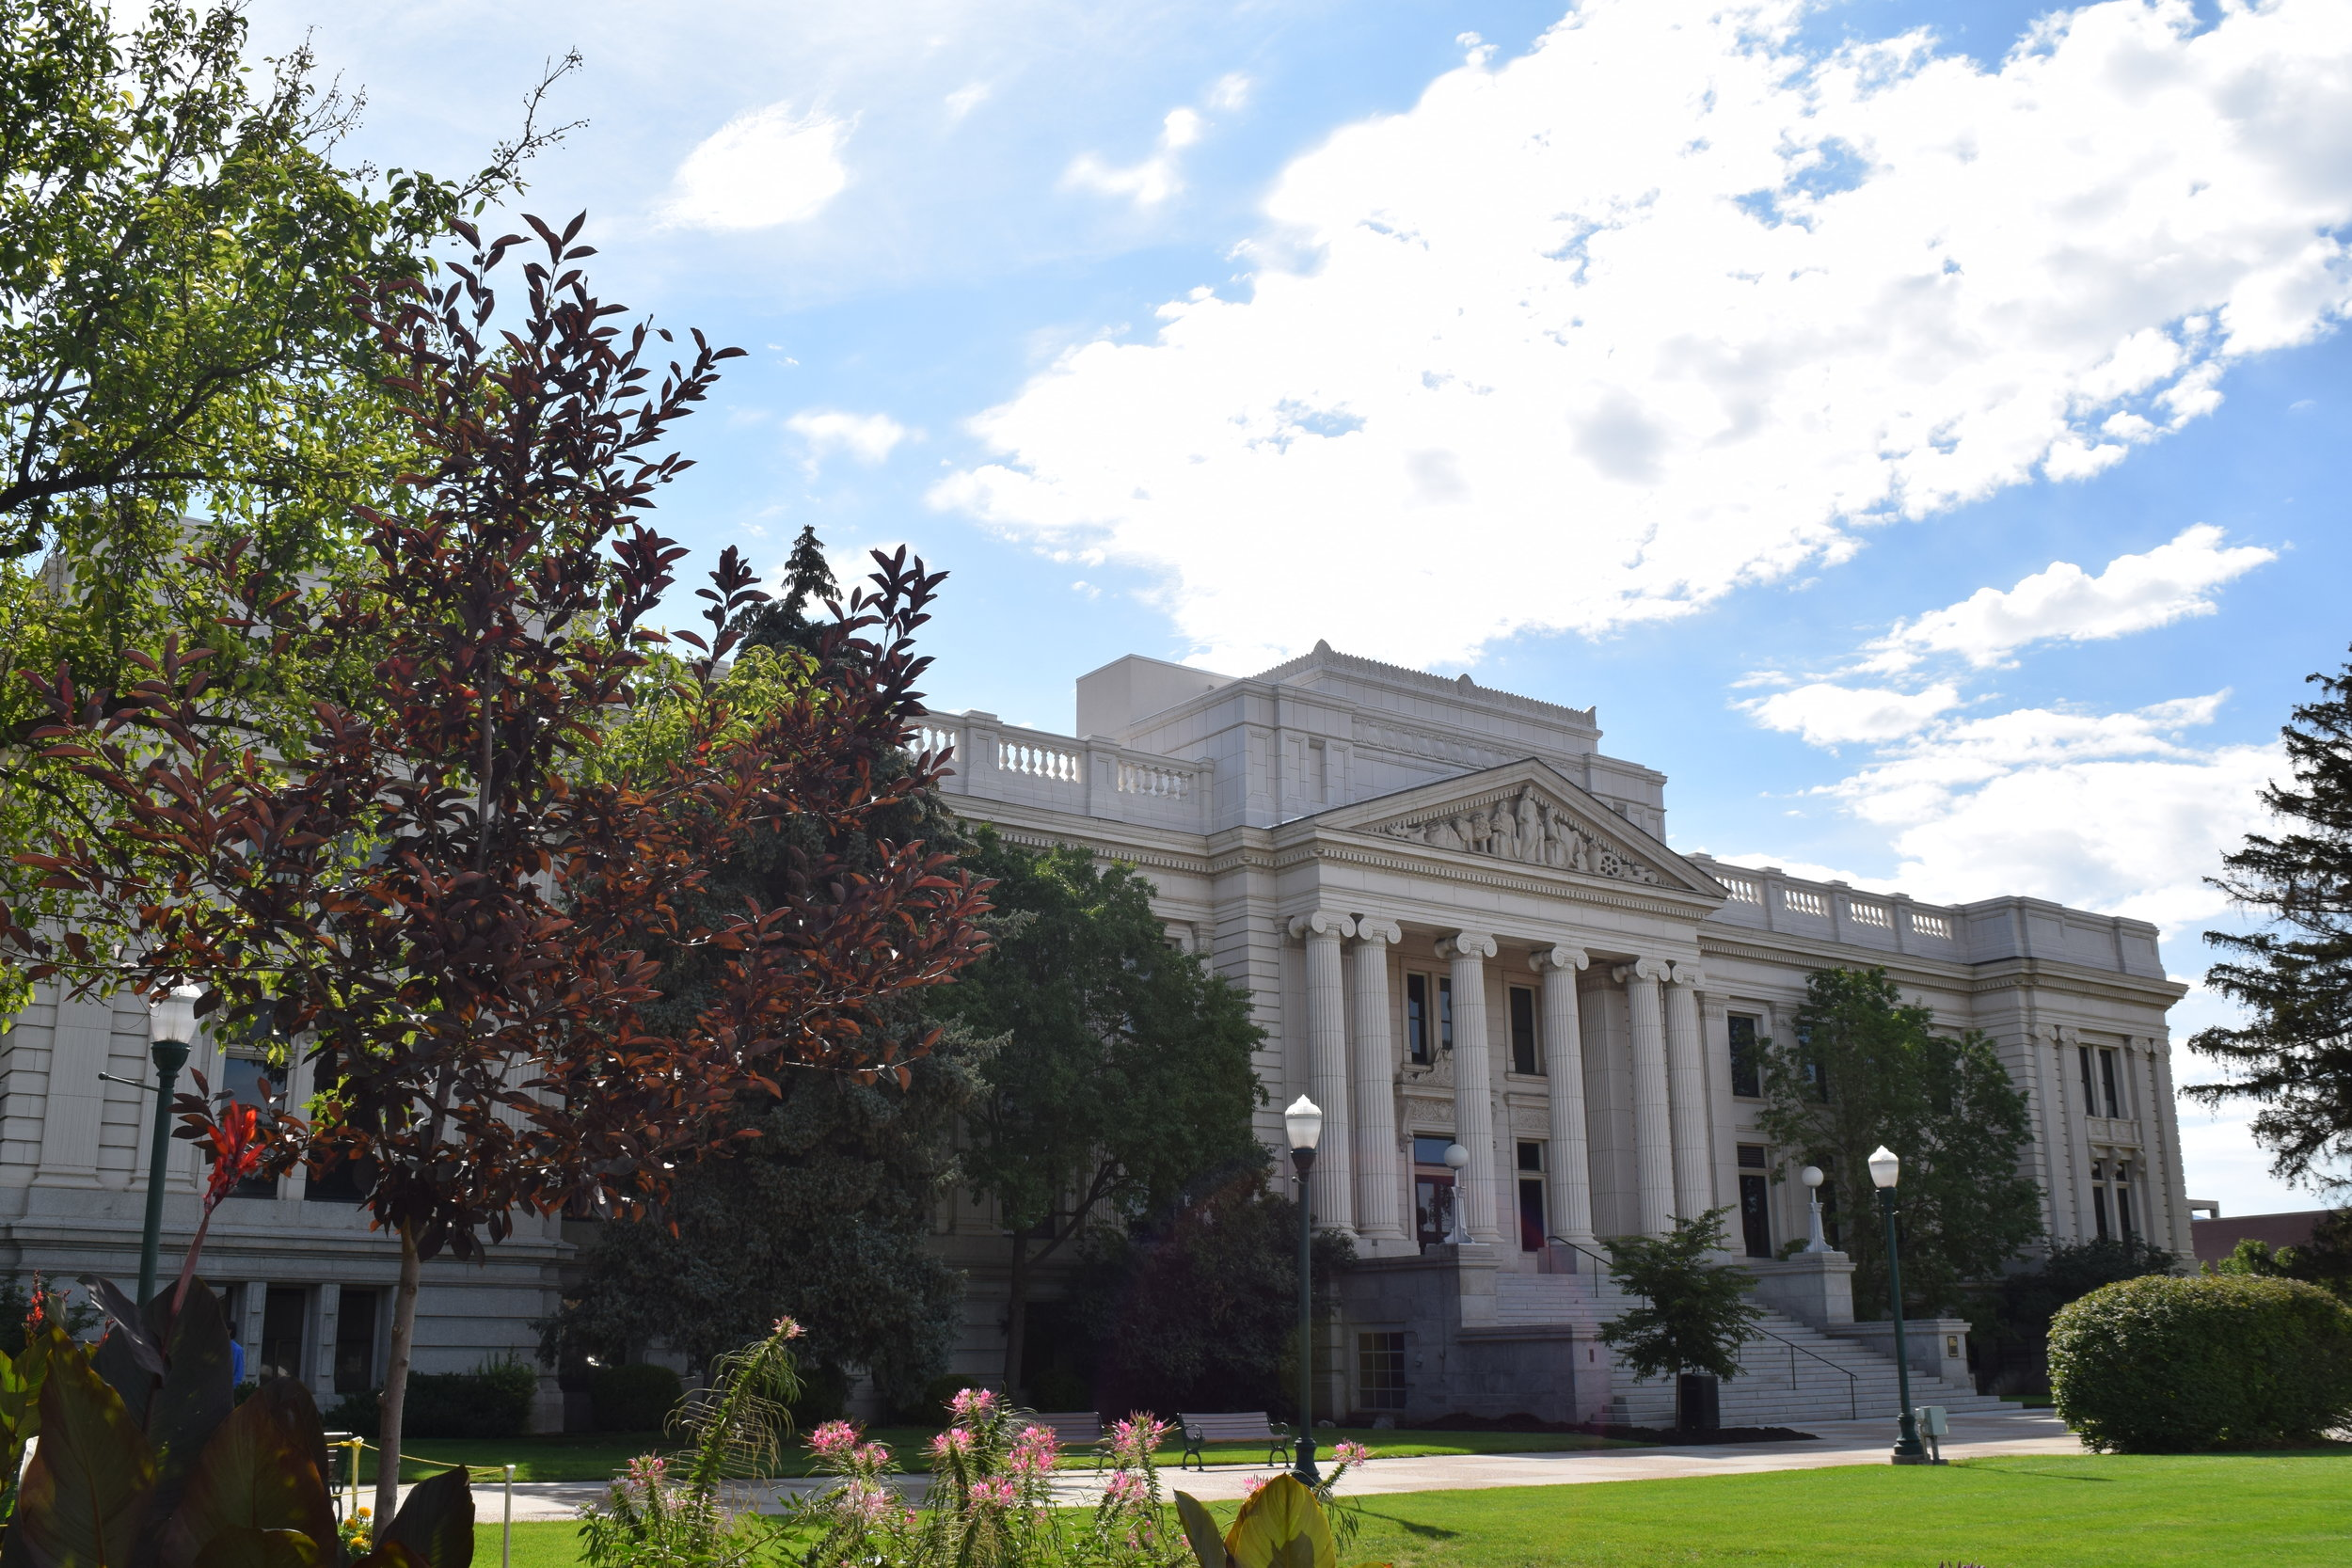 The old Utah County Courthouse in Provo, Utah.